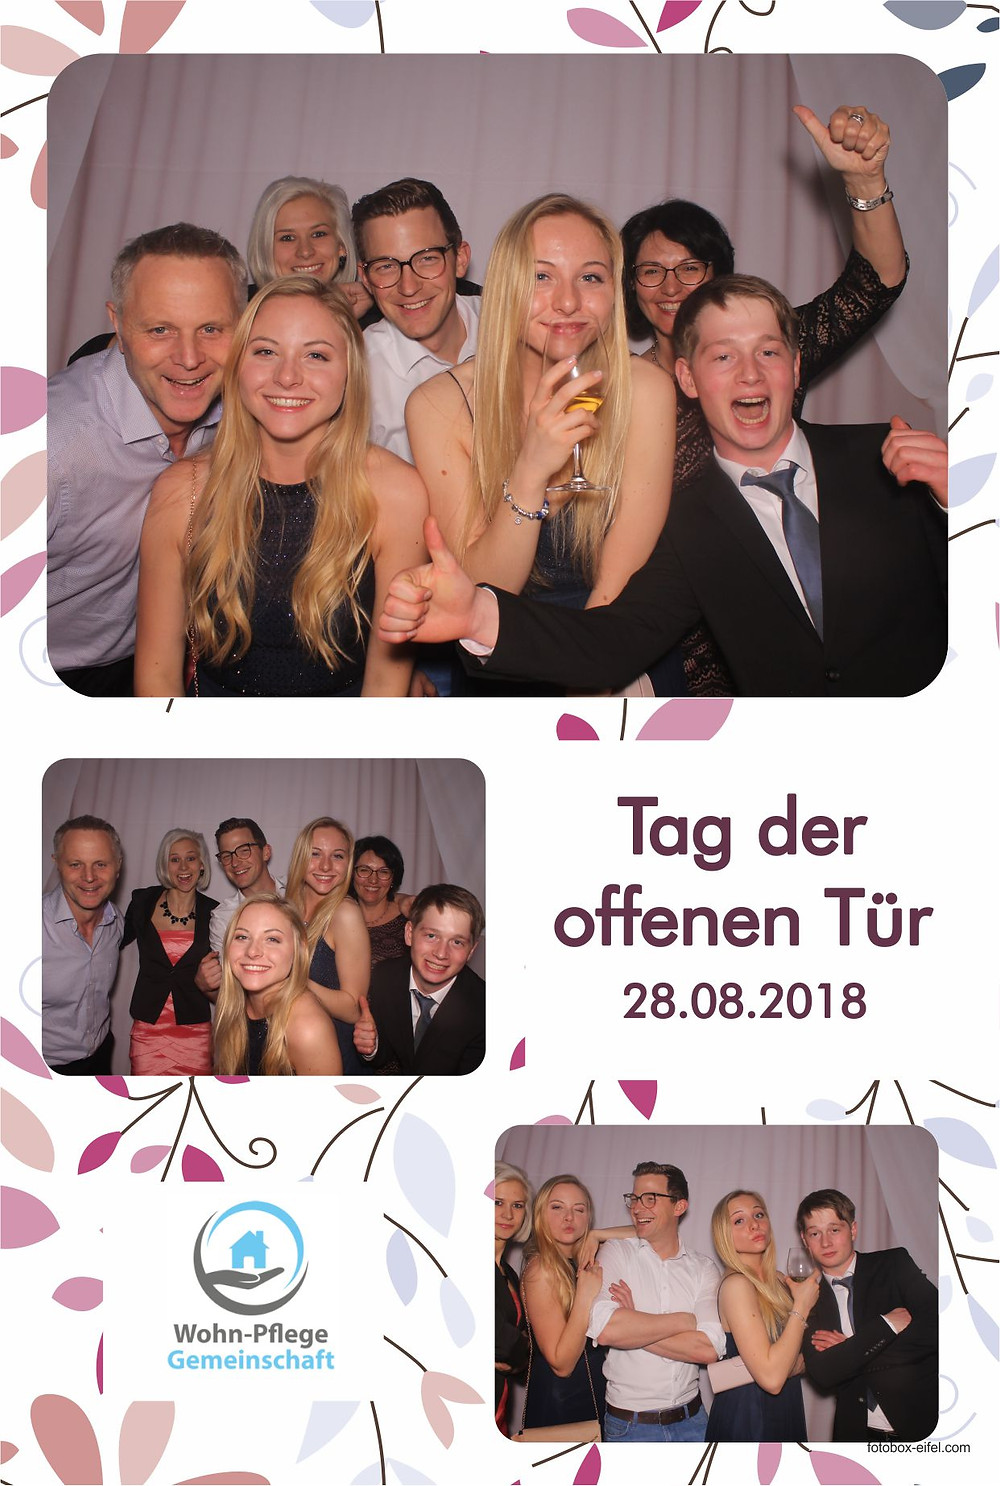 Fotobox-Eifel Photobooth Knipskiste